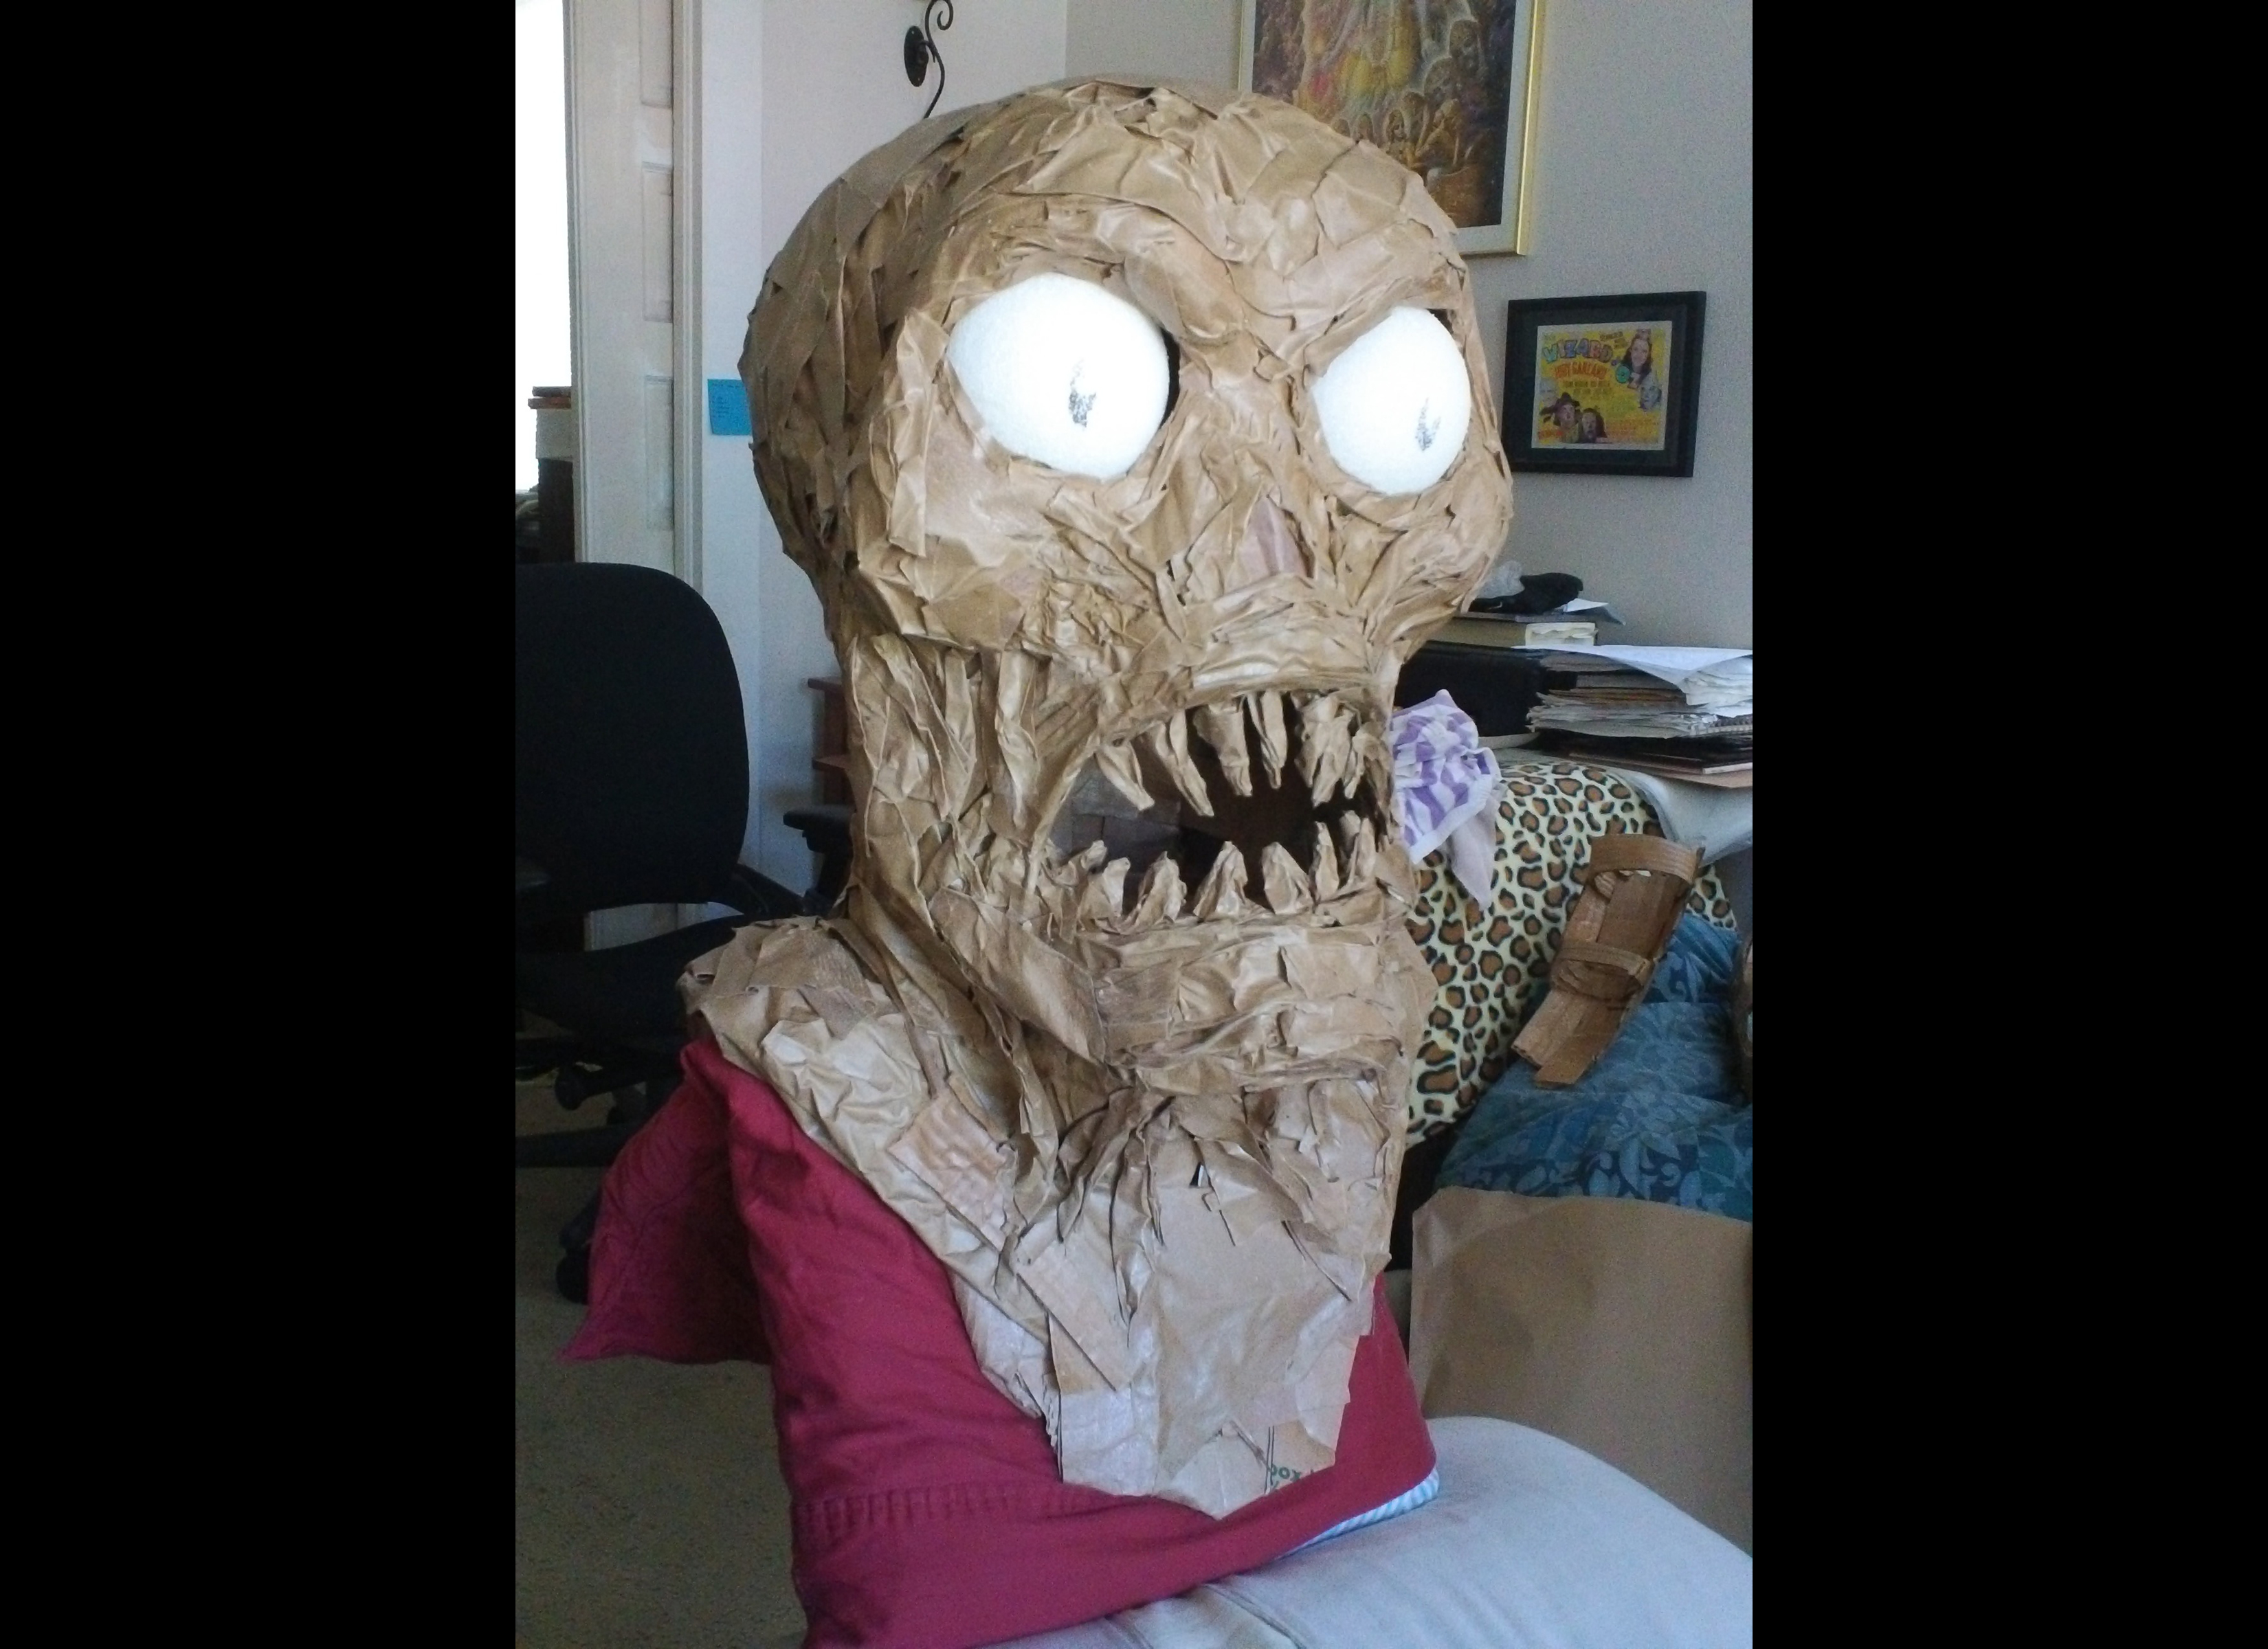 Epic Homemade Troll and Creature Costumes - creation progress ...